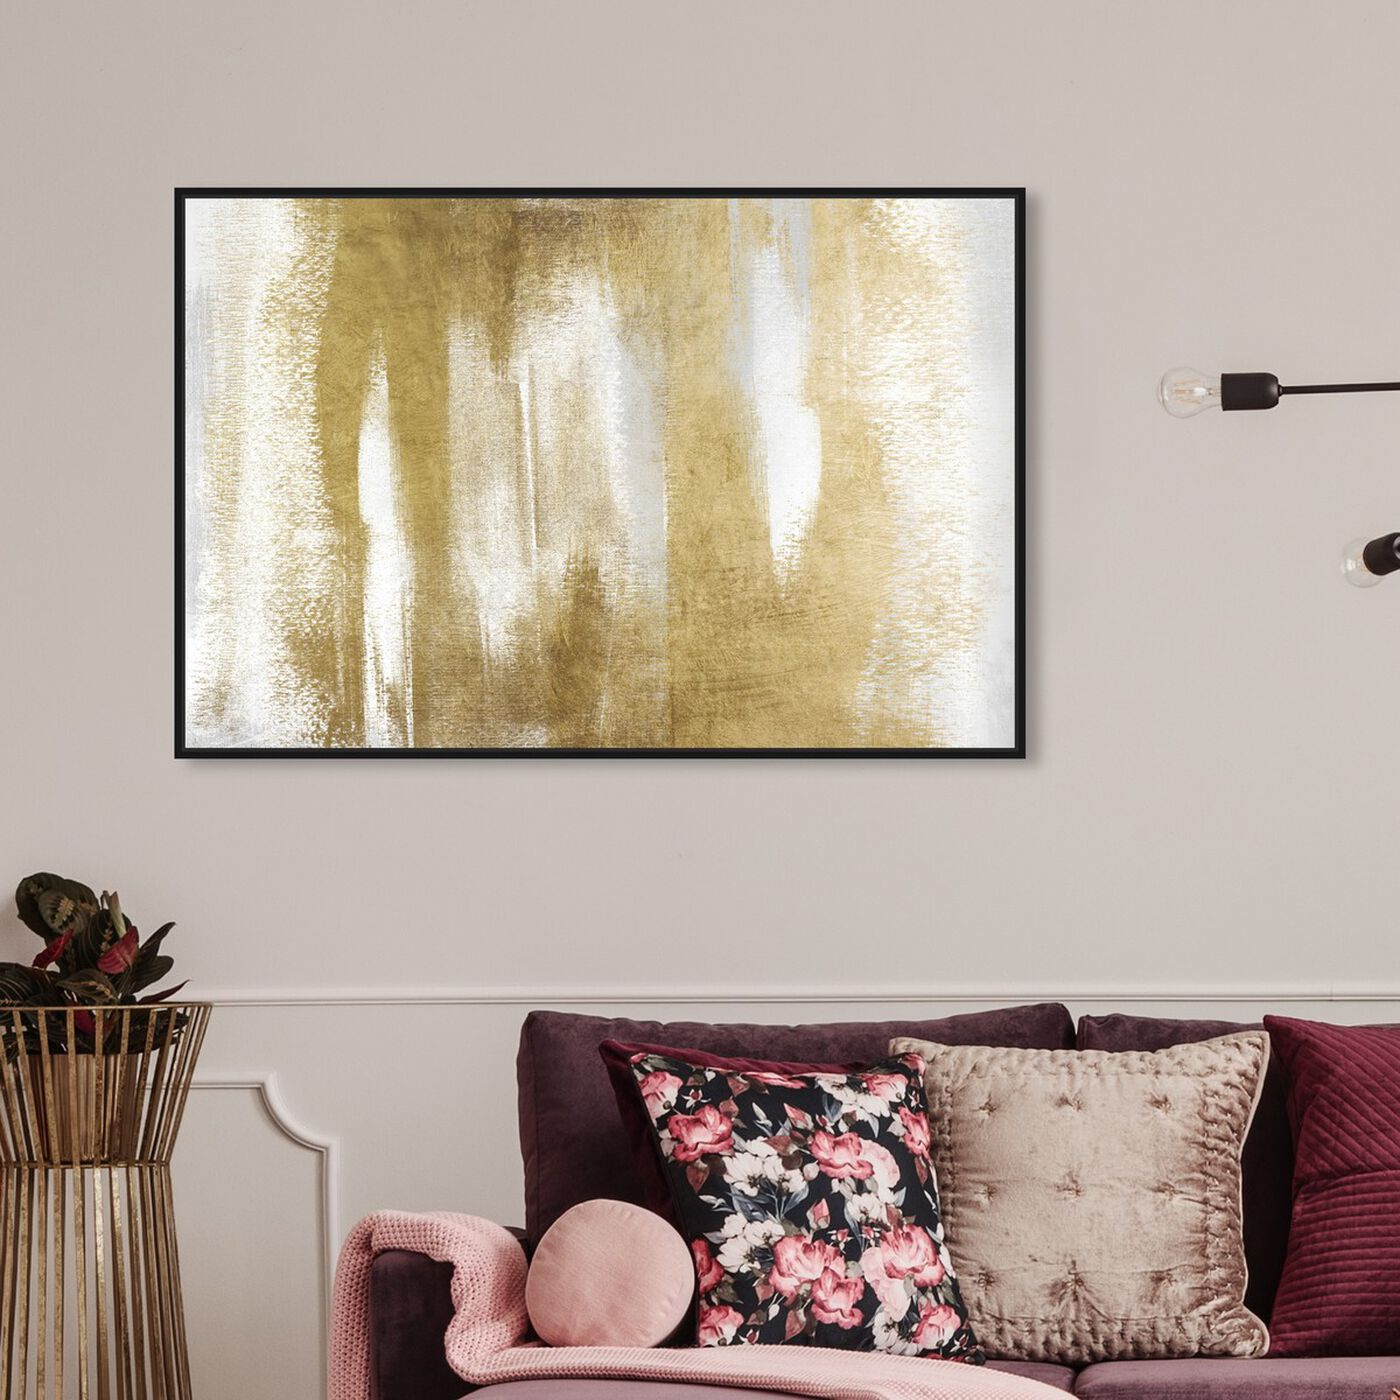 Hanging view of Behold featuring abstract and textures art.